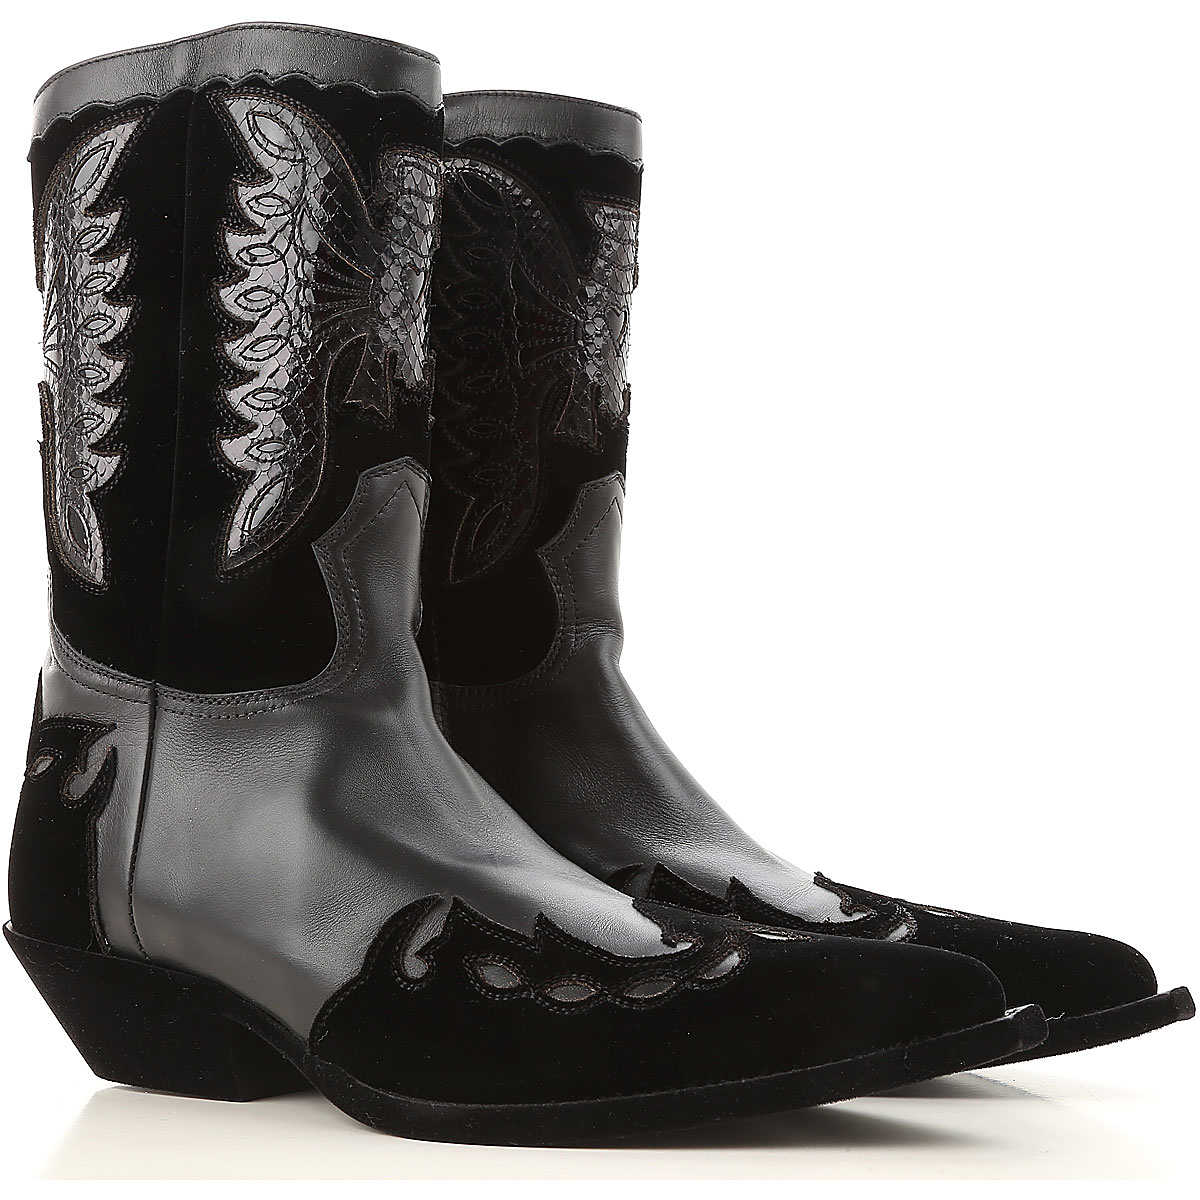 Givenchy Boots for Men Booties On Sale in Outlet - GOOFASH